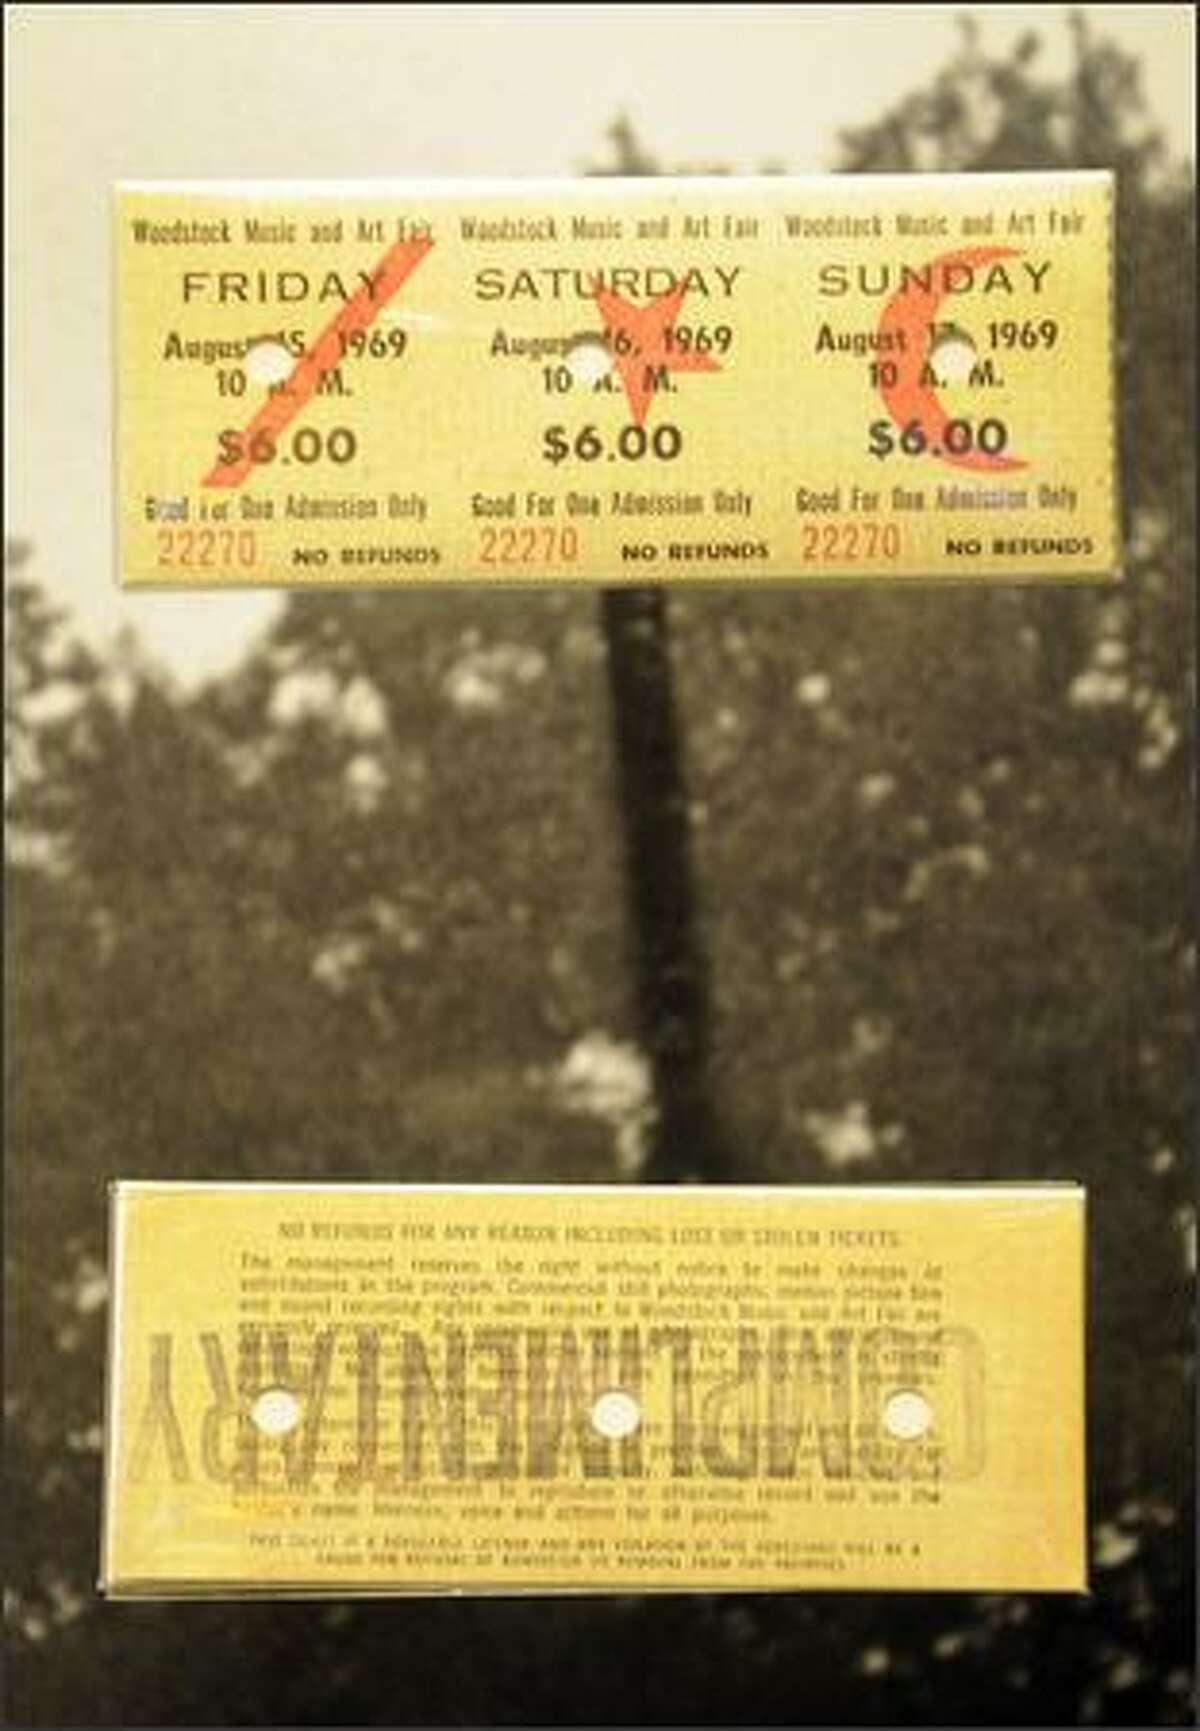 Tickets to the three-day Woodstock music festival are on display.